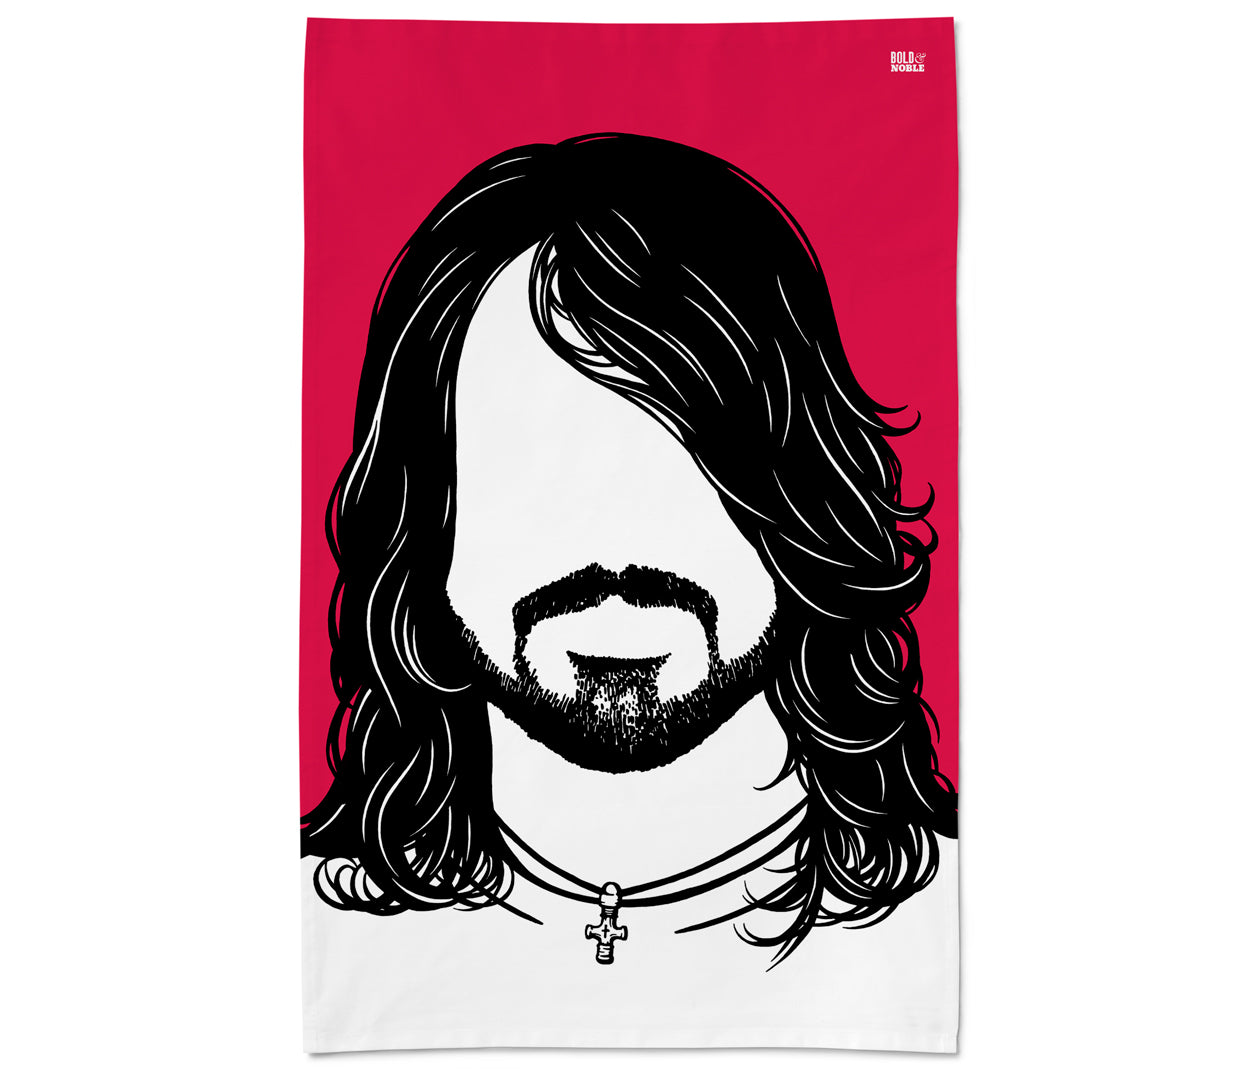 Dave Grohl Rock Icon Tea Towel in Red